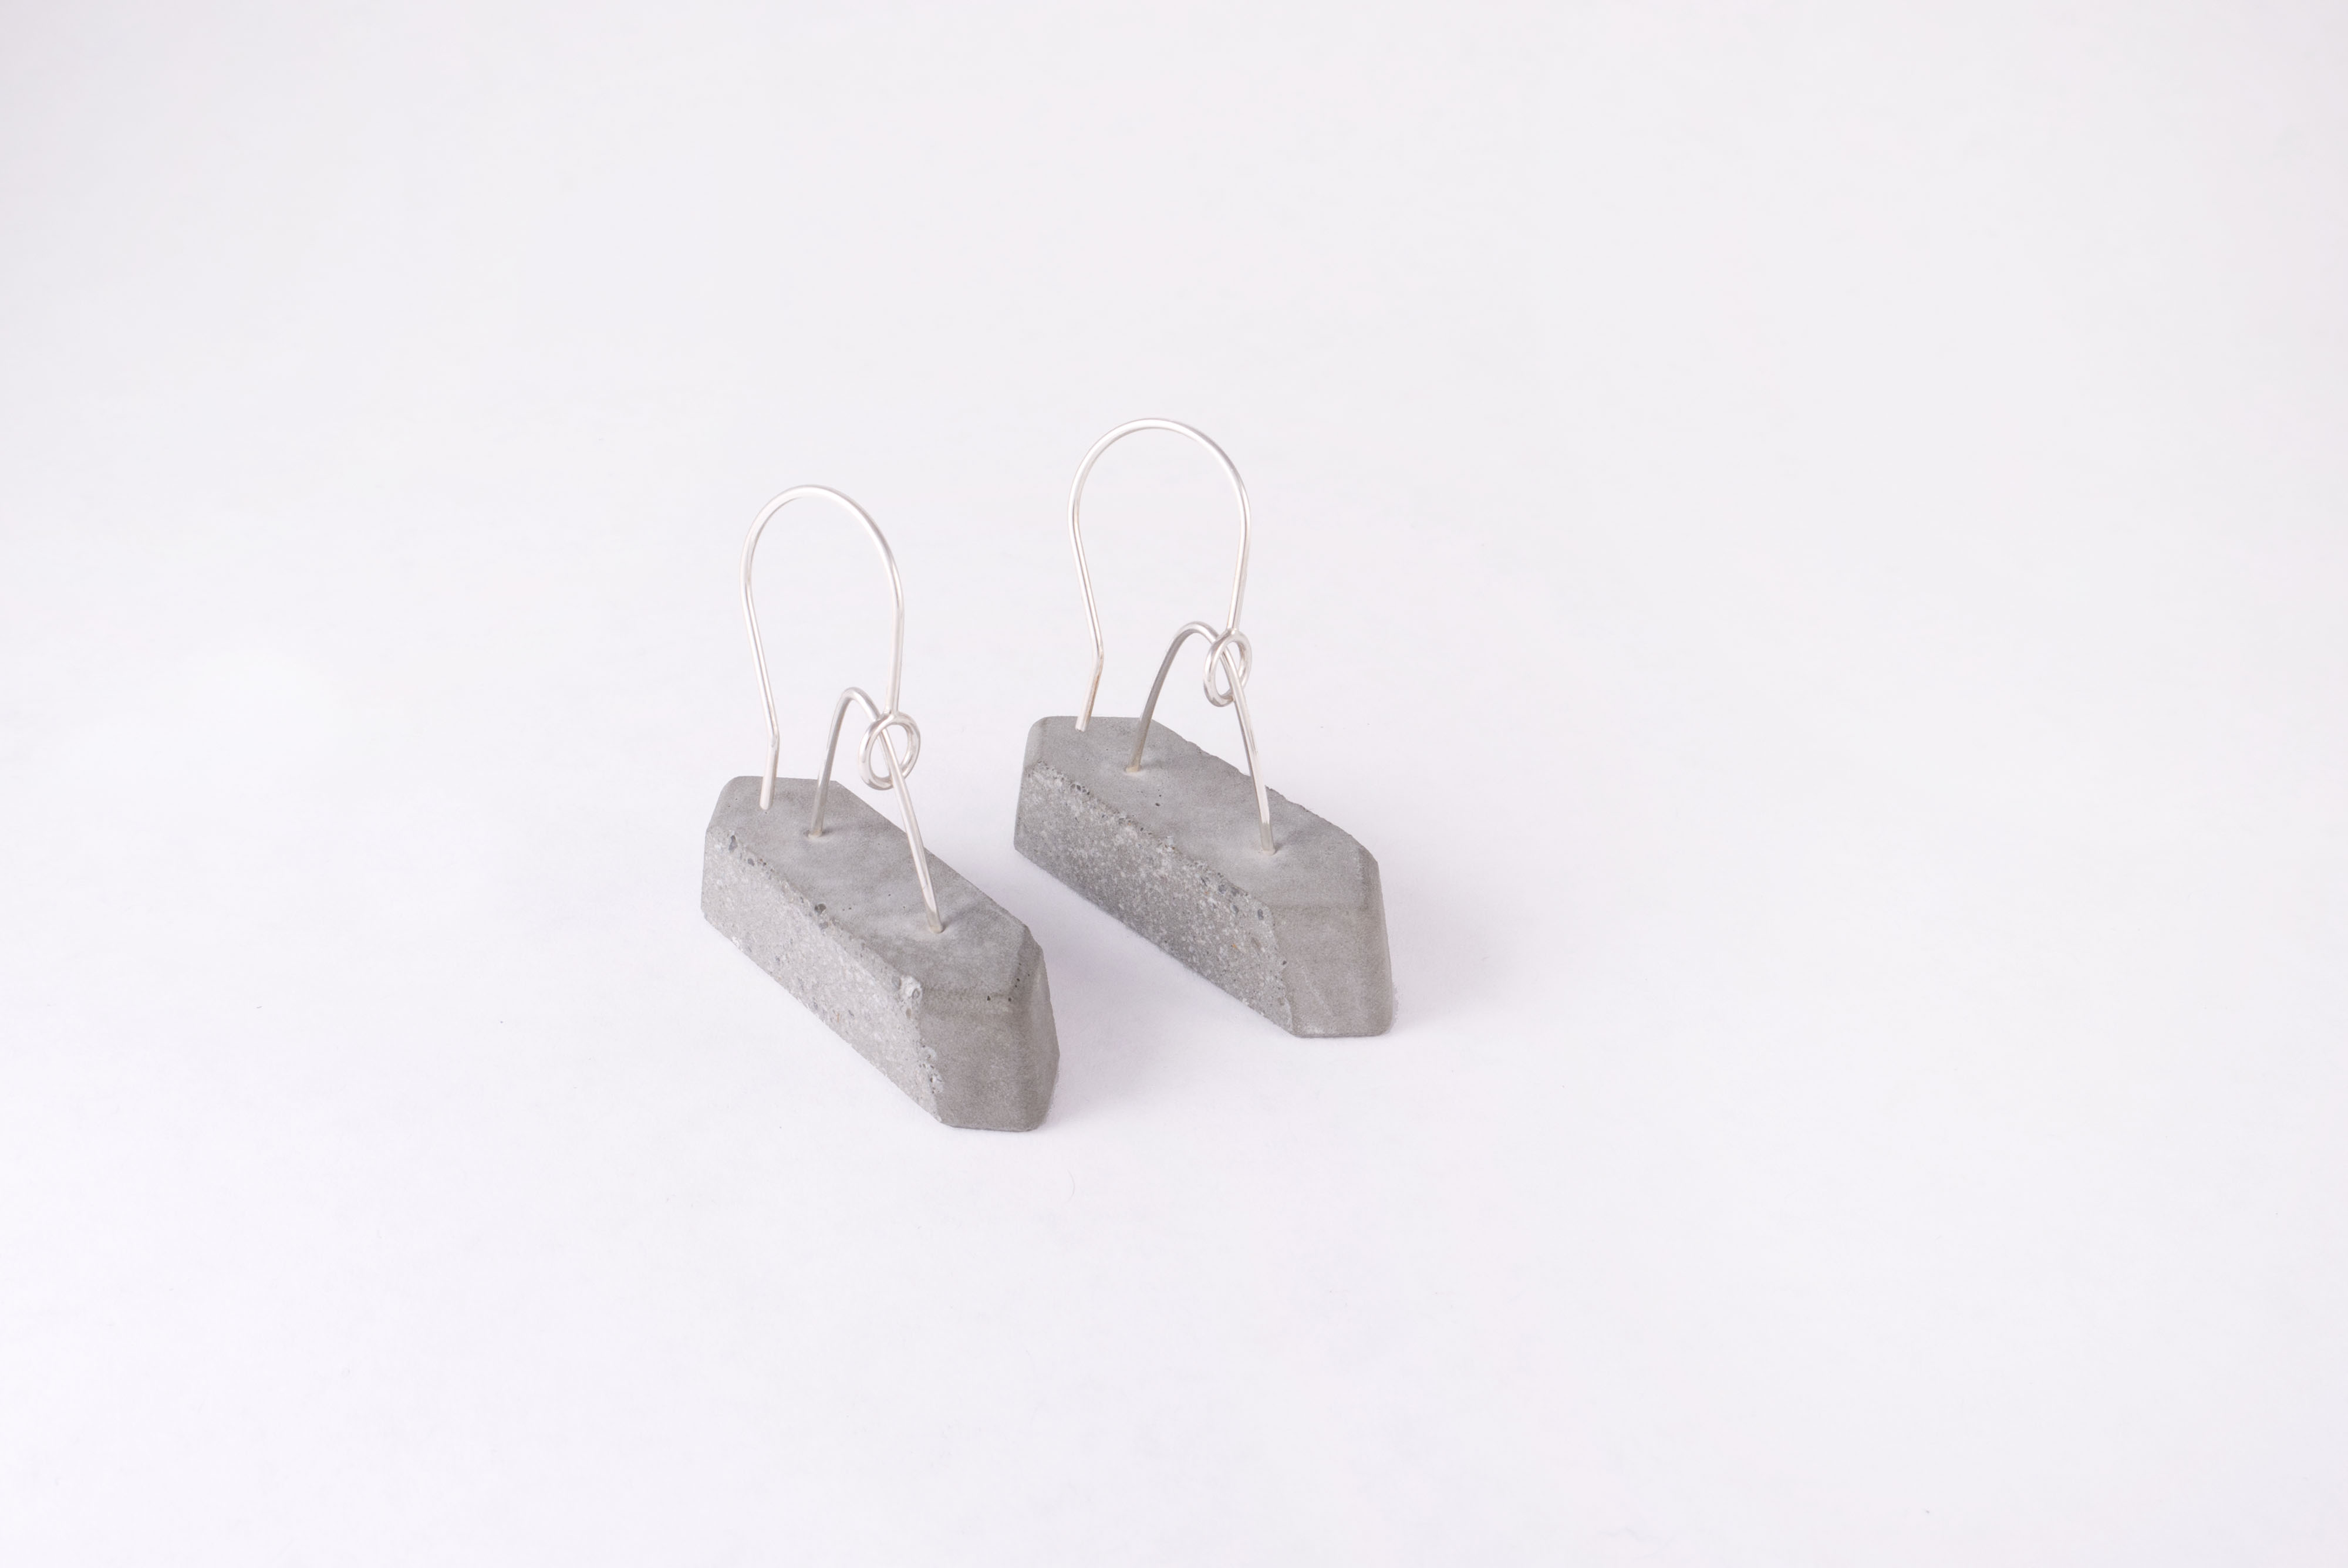 Michael Ruta Concrete Jewelry